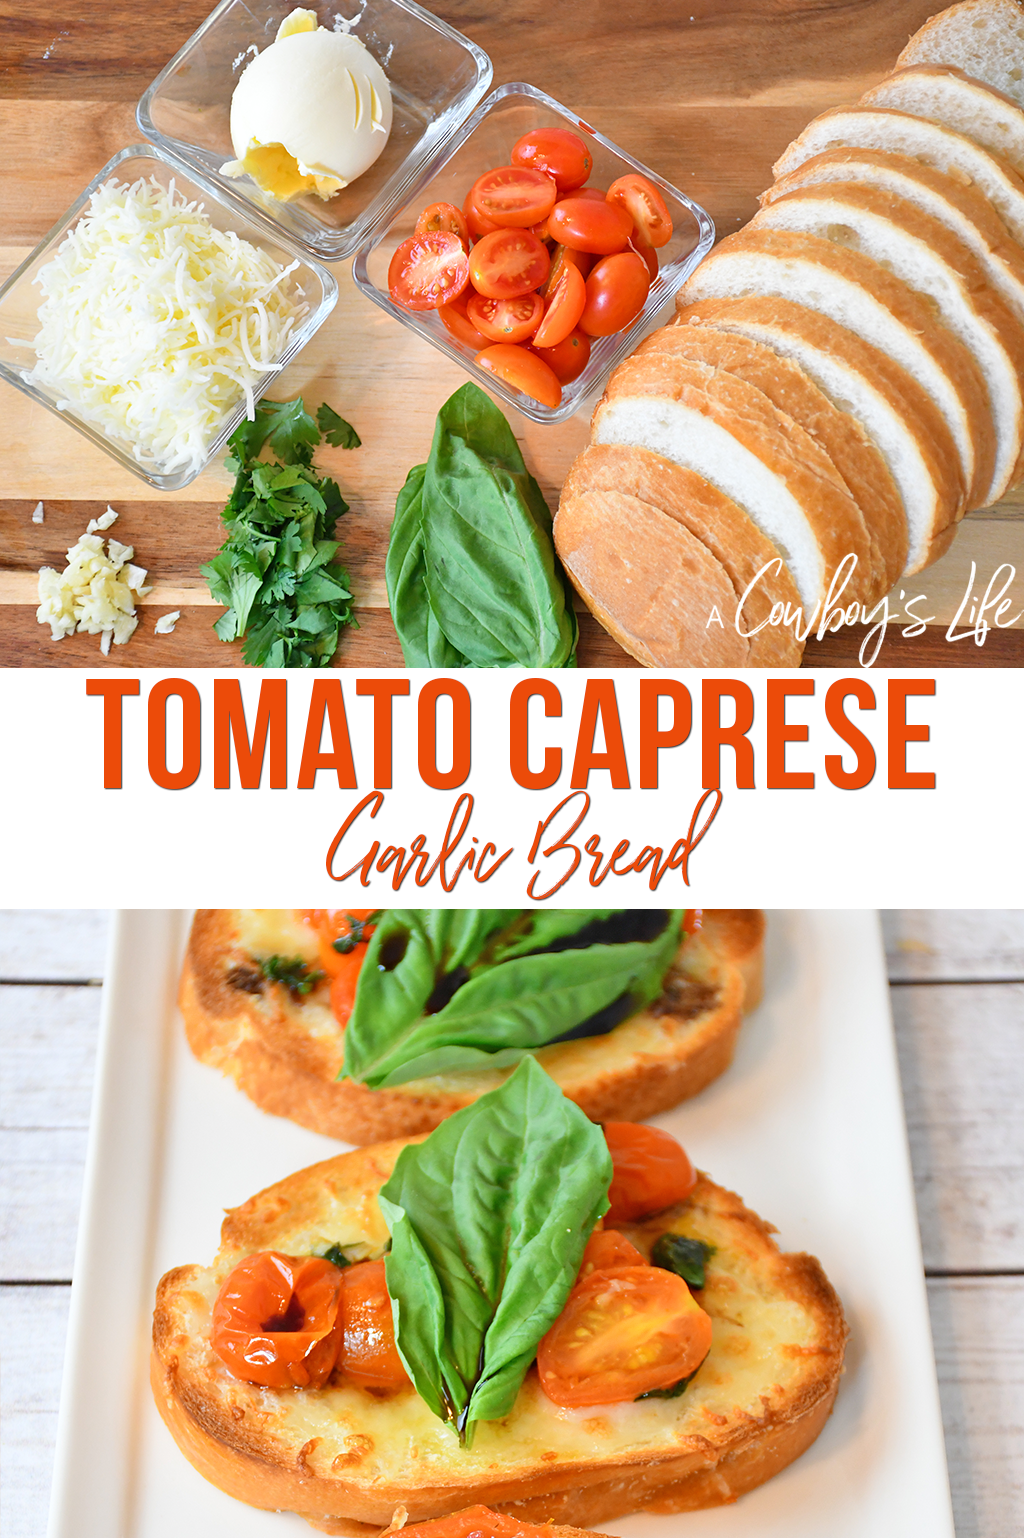 How to make tomato caprese garlic bread